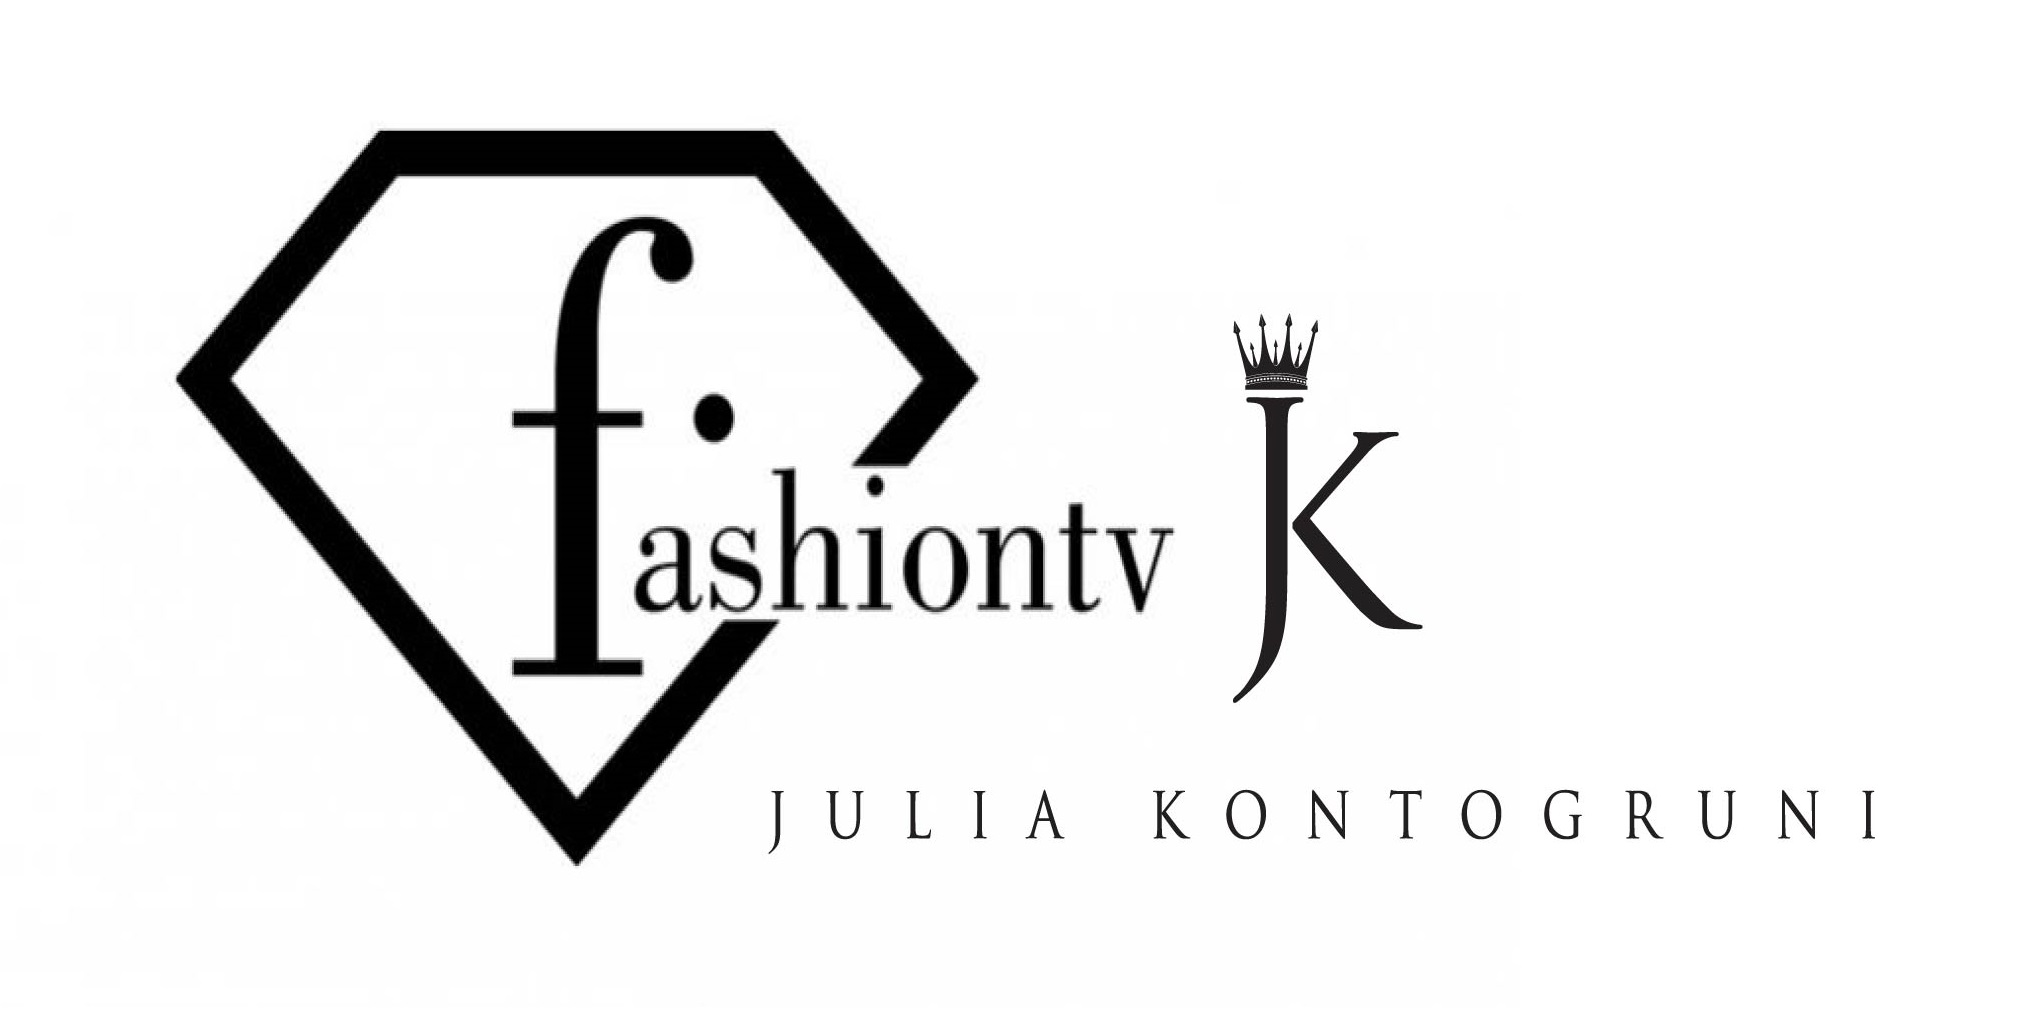 luxury-wedding-dresses-new-york-julia-kontogruni-fashiontv JK vuelve a publicar Fashion  #Fashion #TV #See it #First - Julia Kontogruni